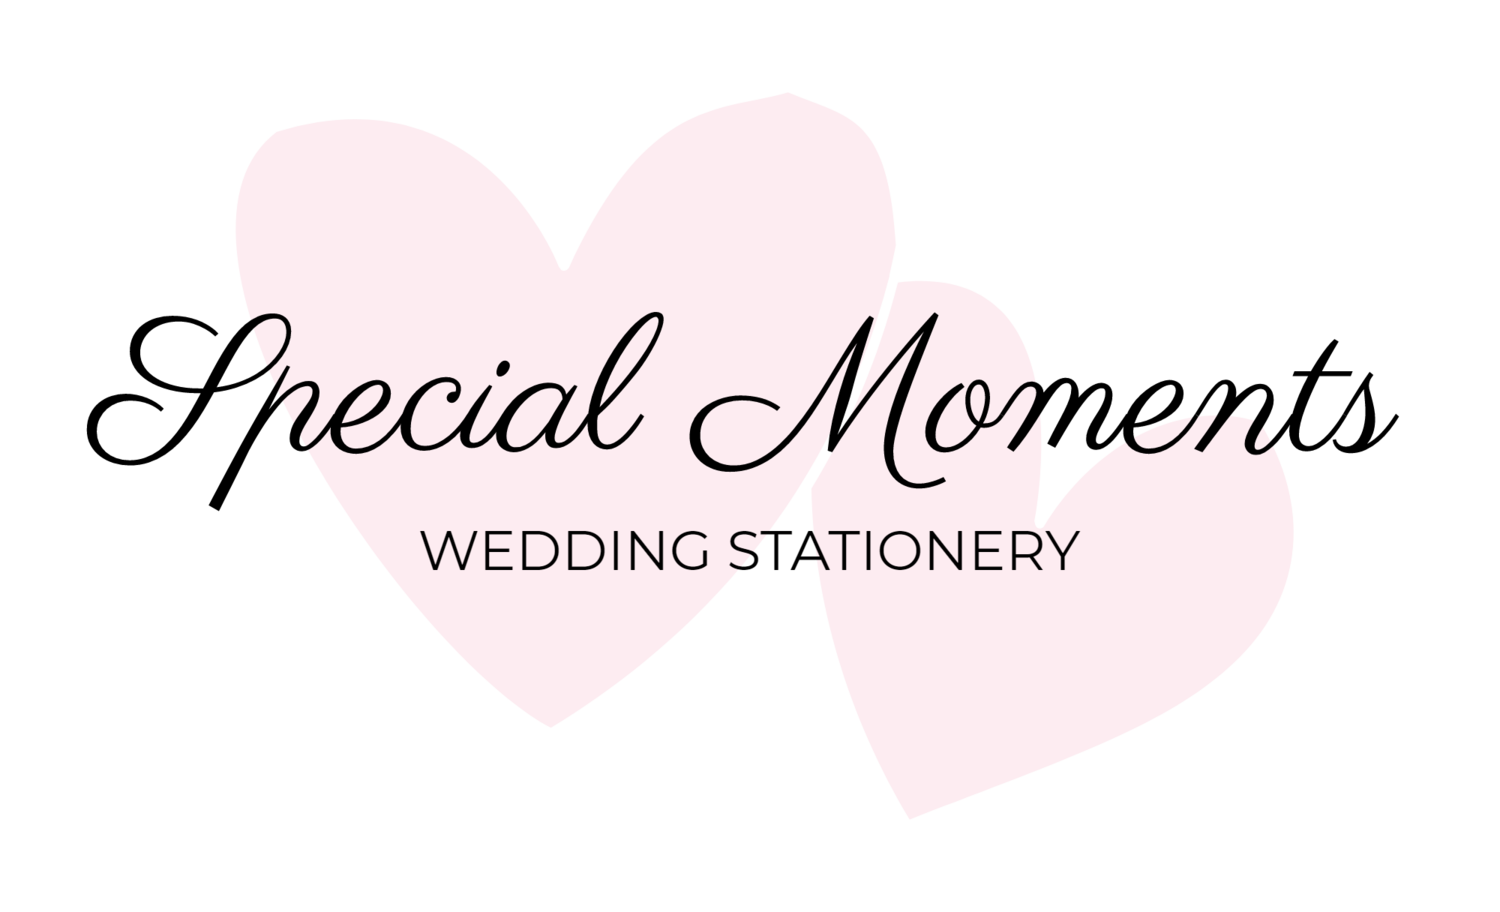 Special Moments Wedding Stationery